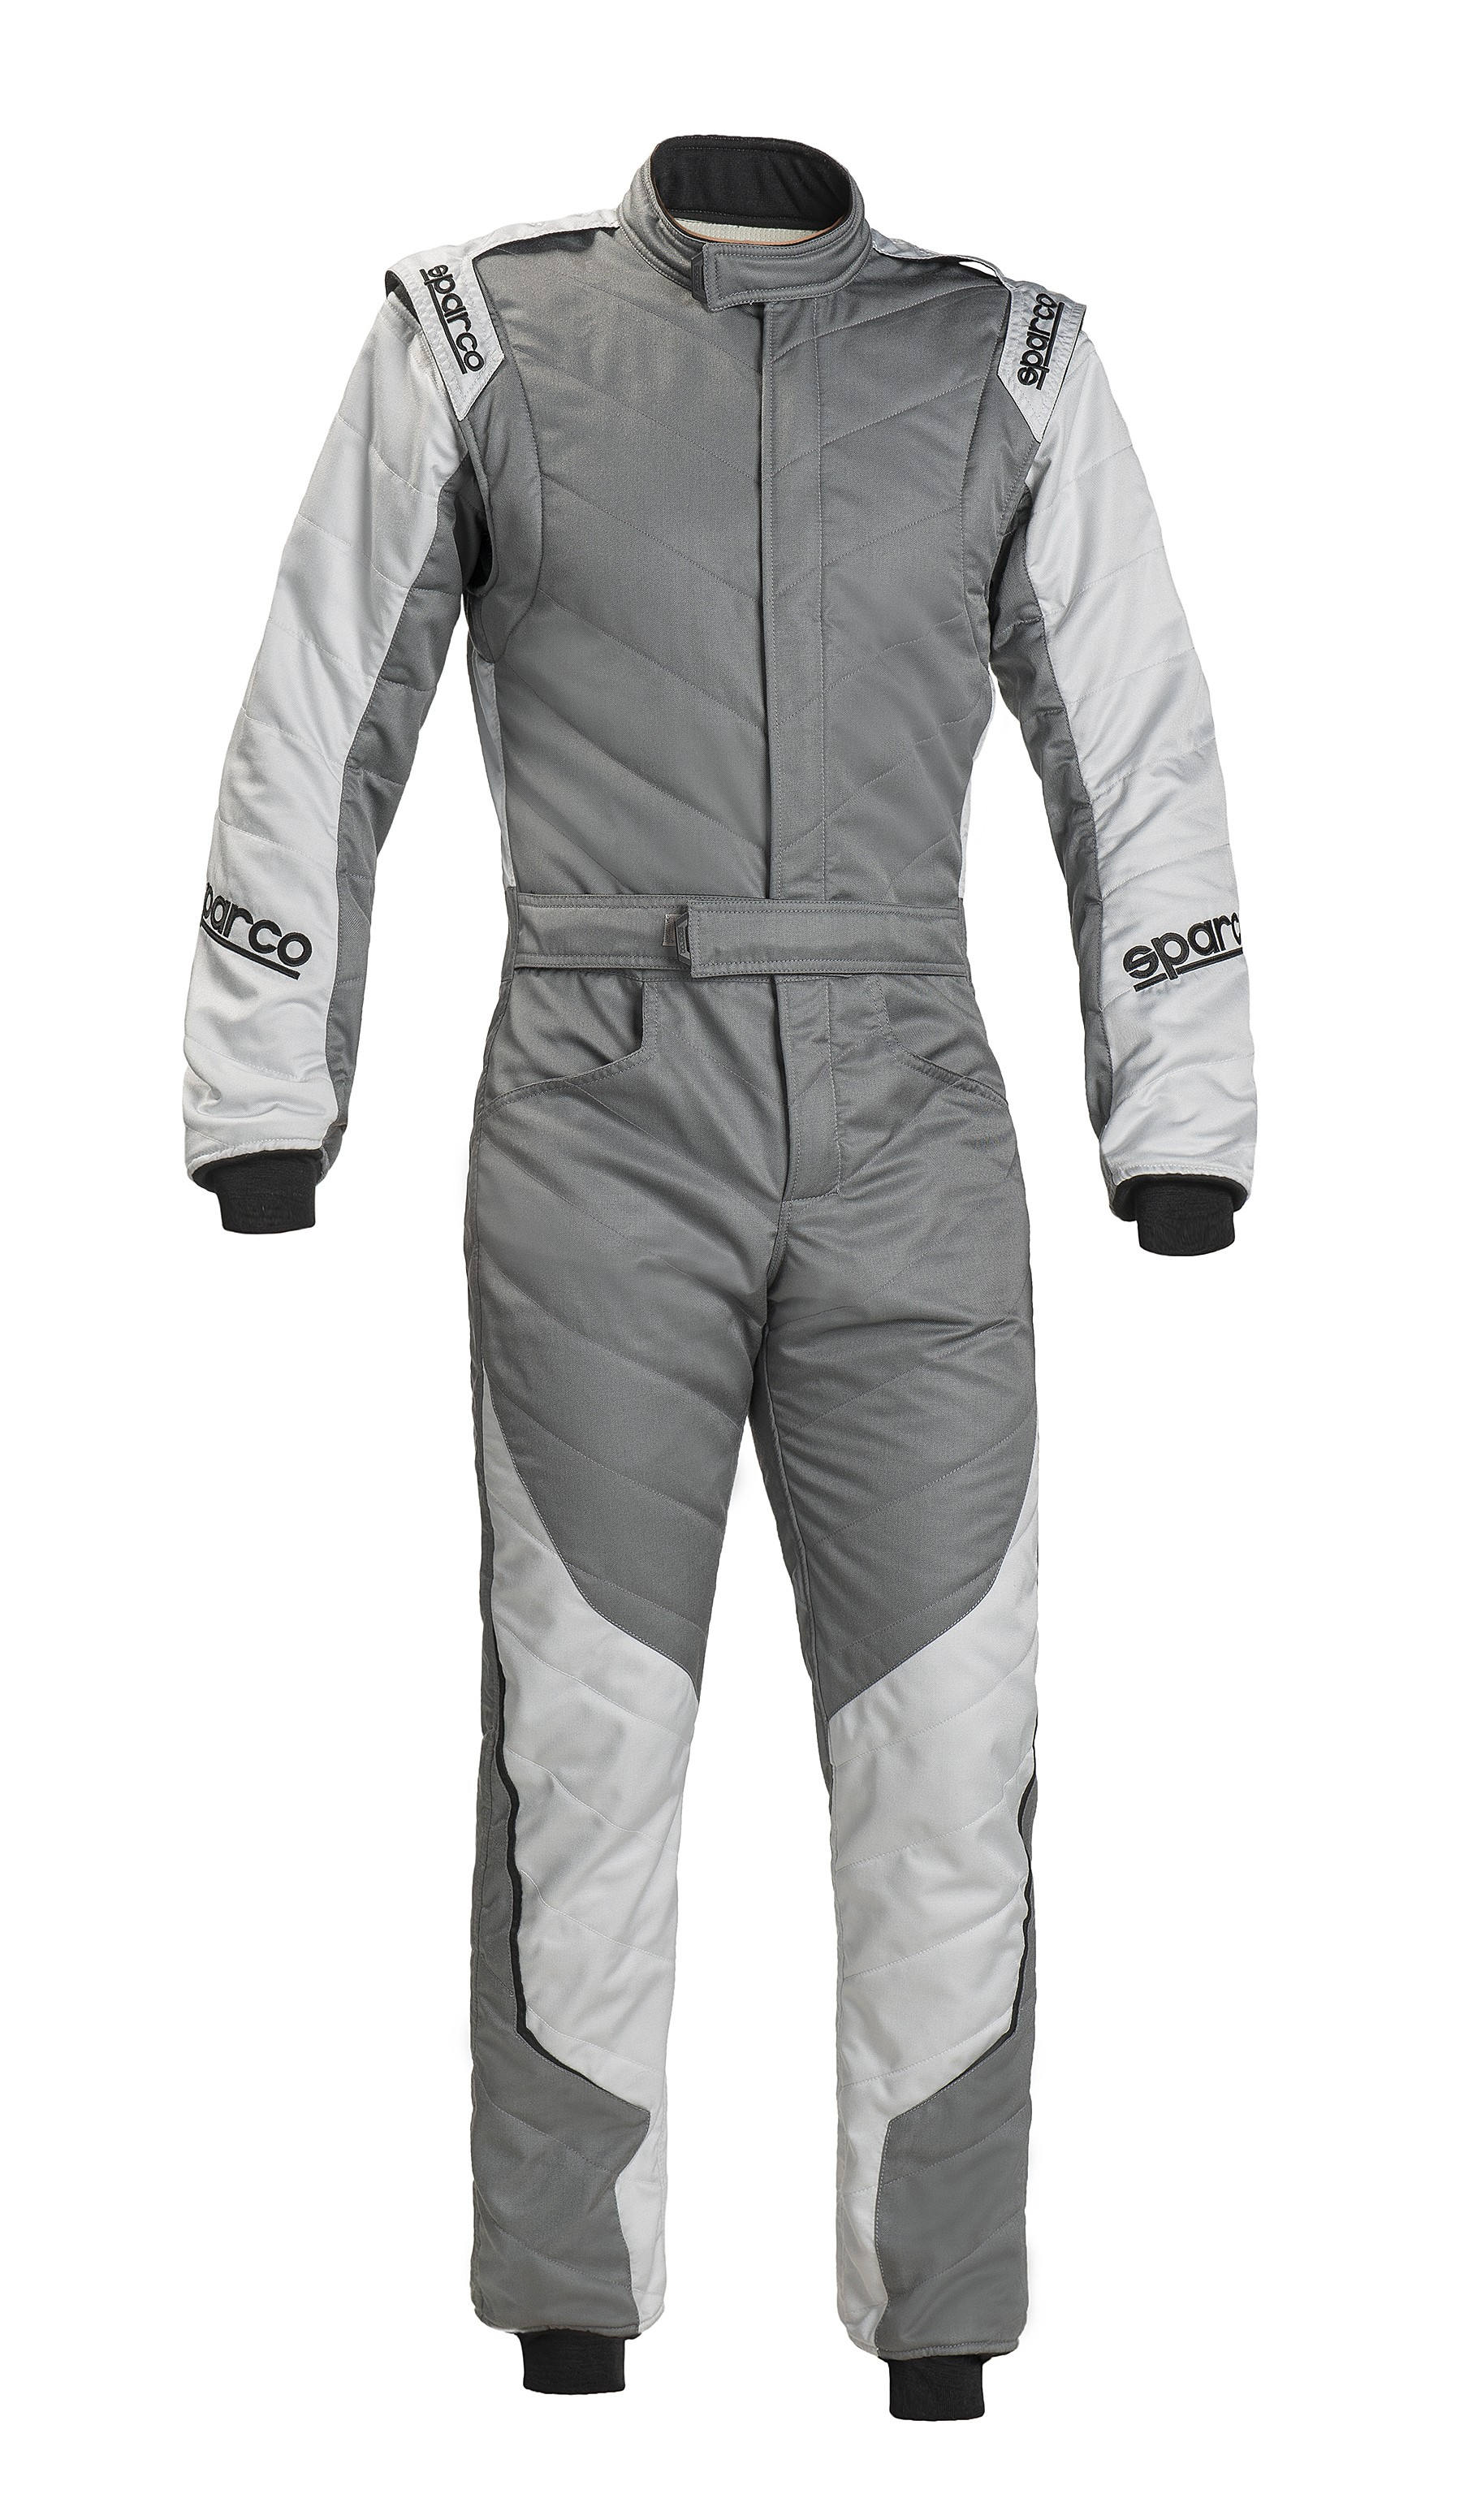 Sparco Energy RS-5 Suit